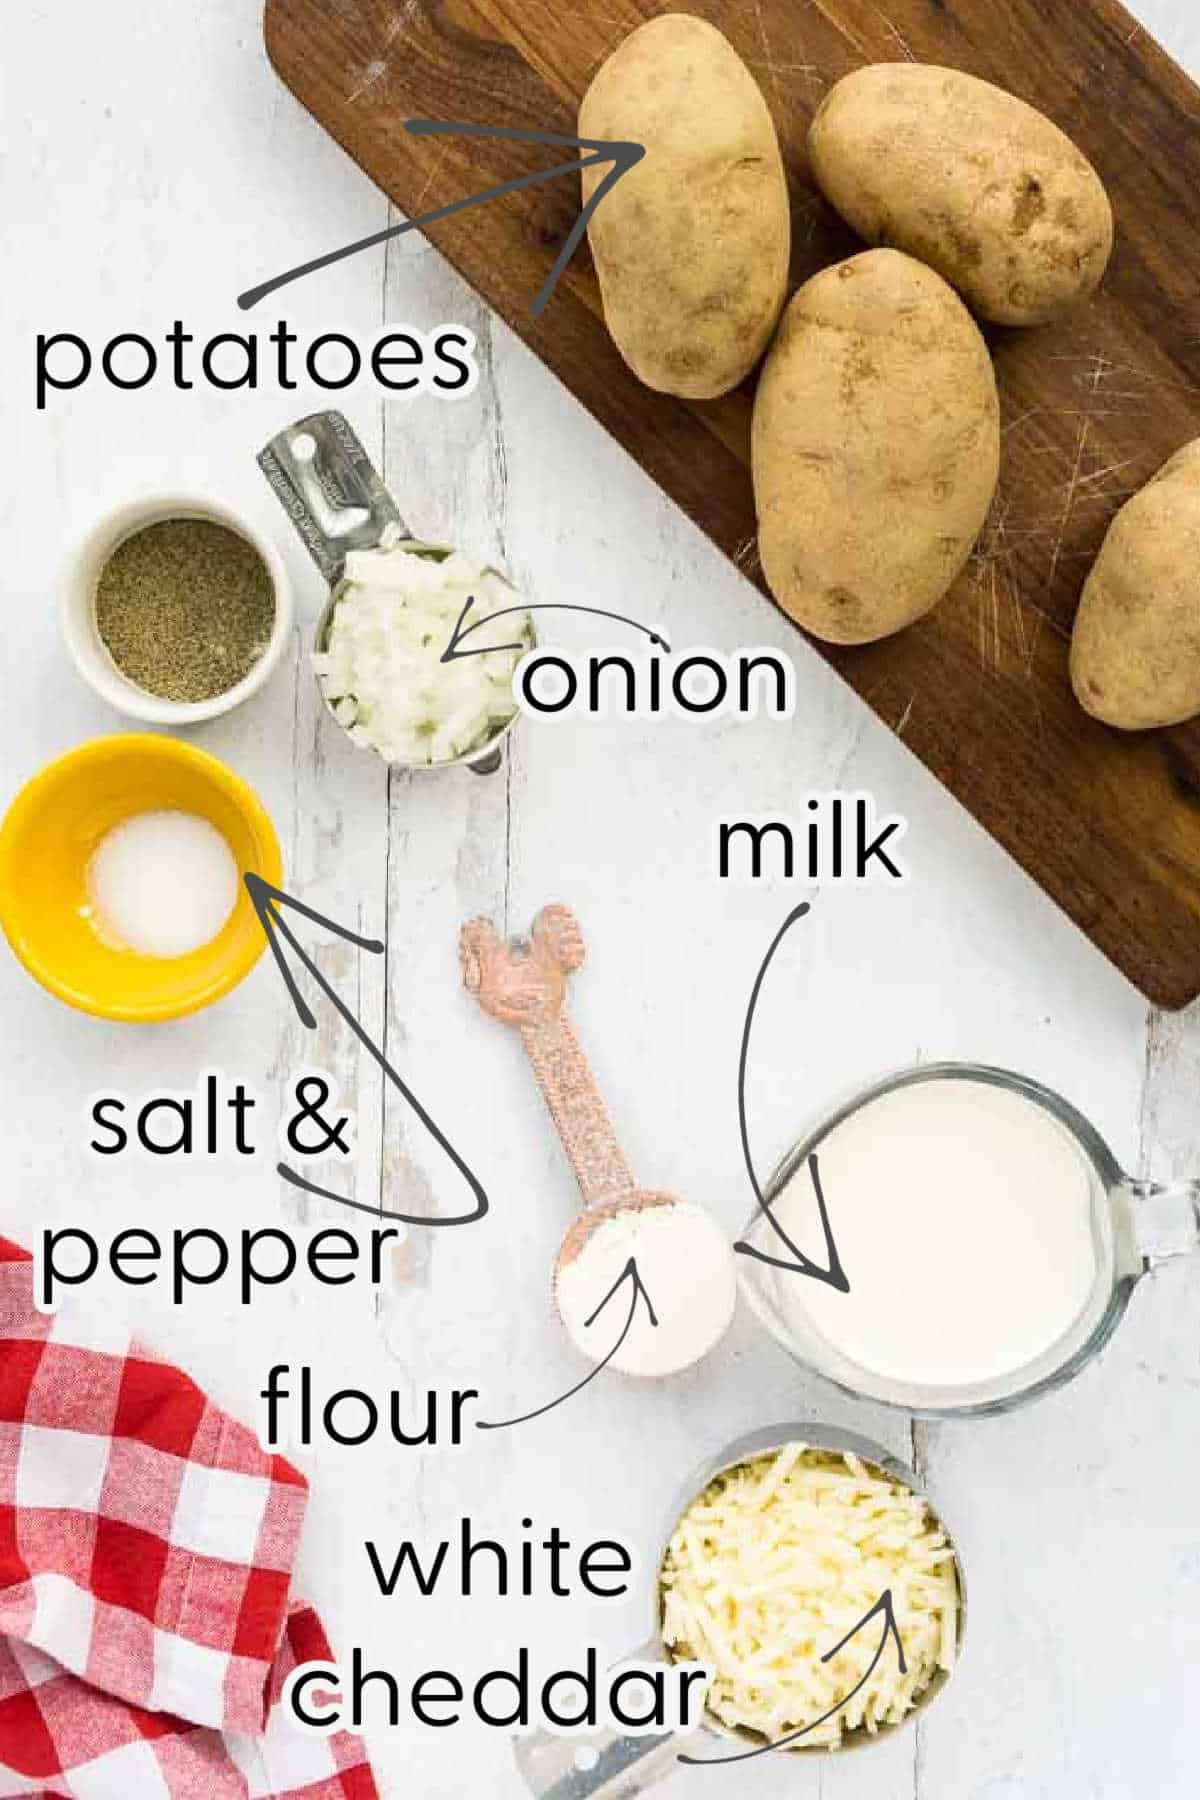 potatoes, milk, white cheddar, onion, salt, pepper, and flour on wooden surface